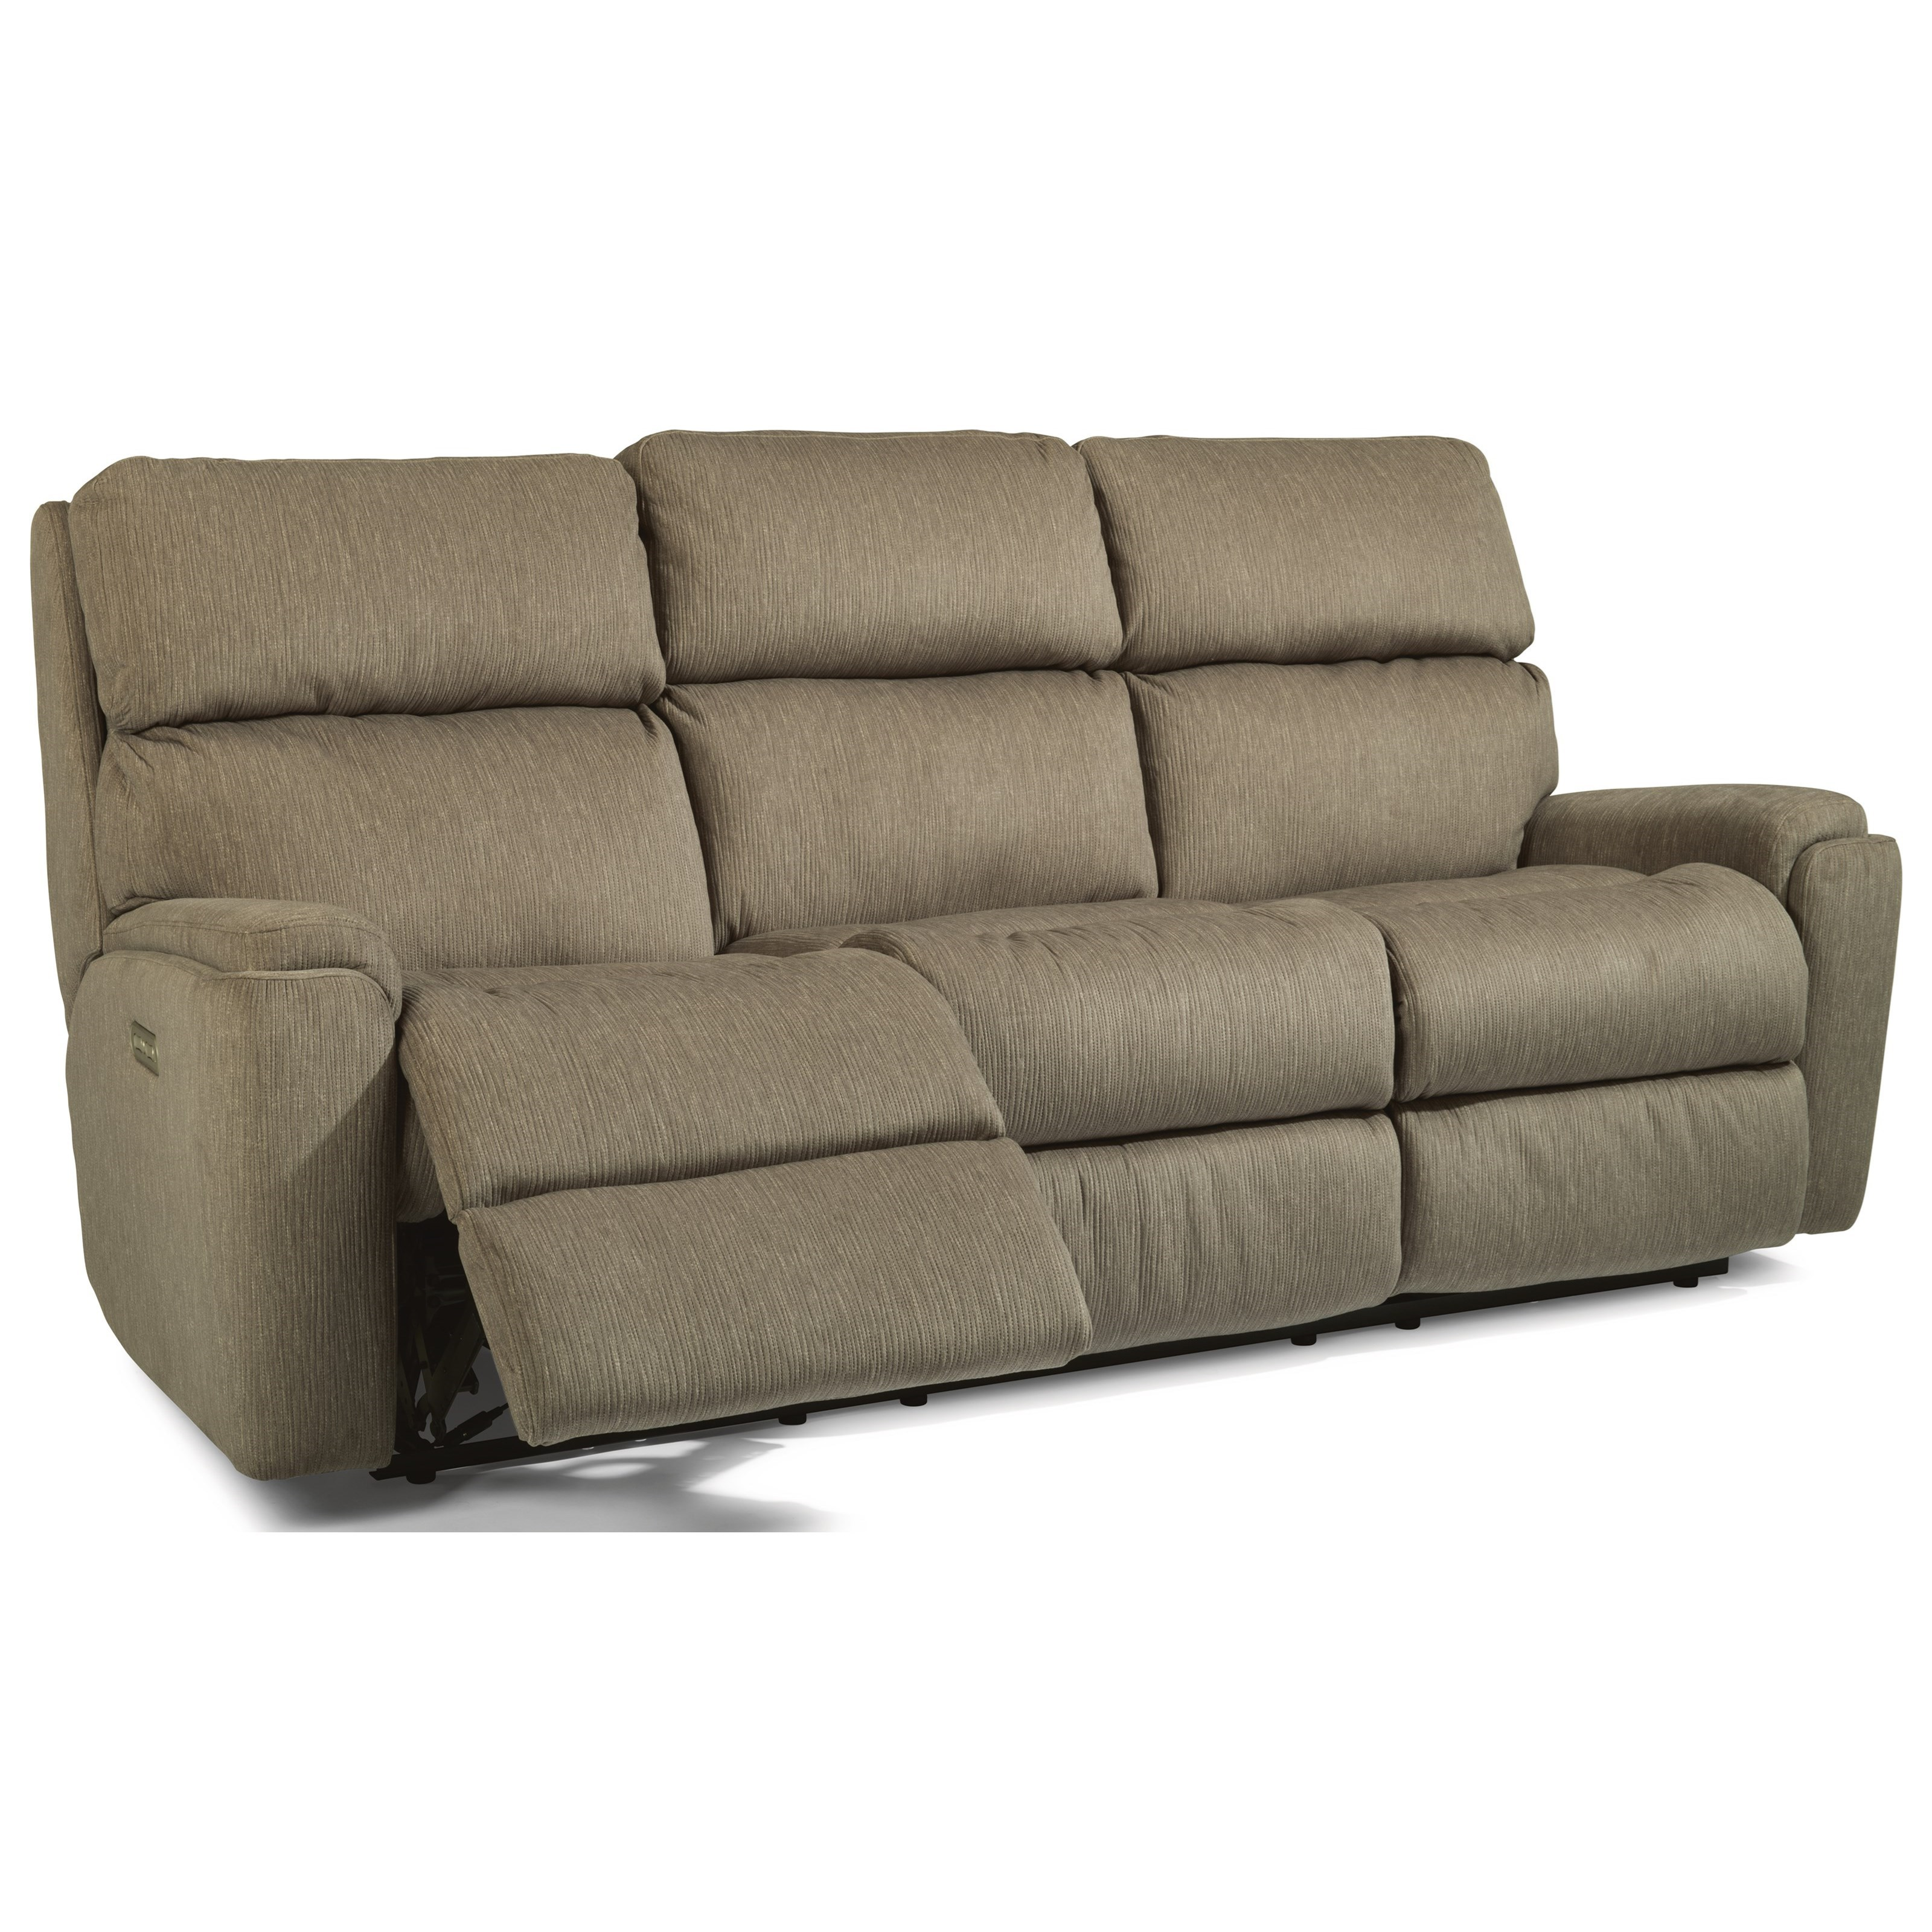 Flexsteel Sofa Bed Mattress: Flexsteel Rio Casual Power Reclining Sofa